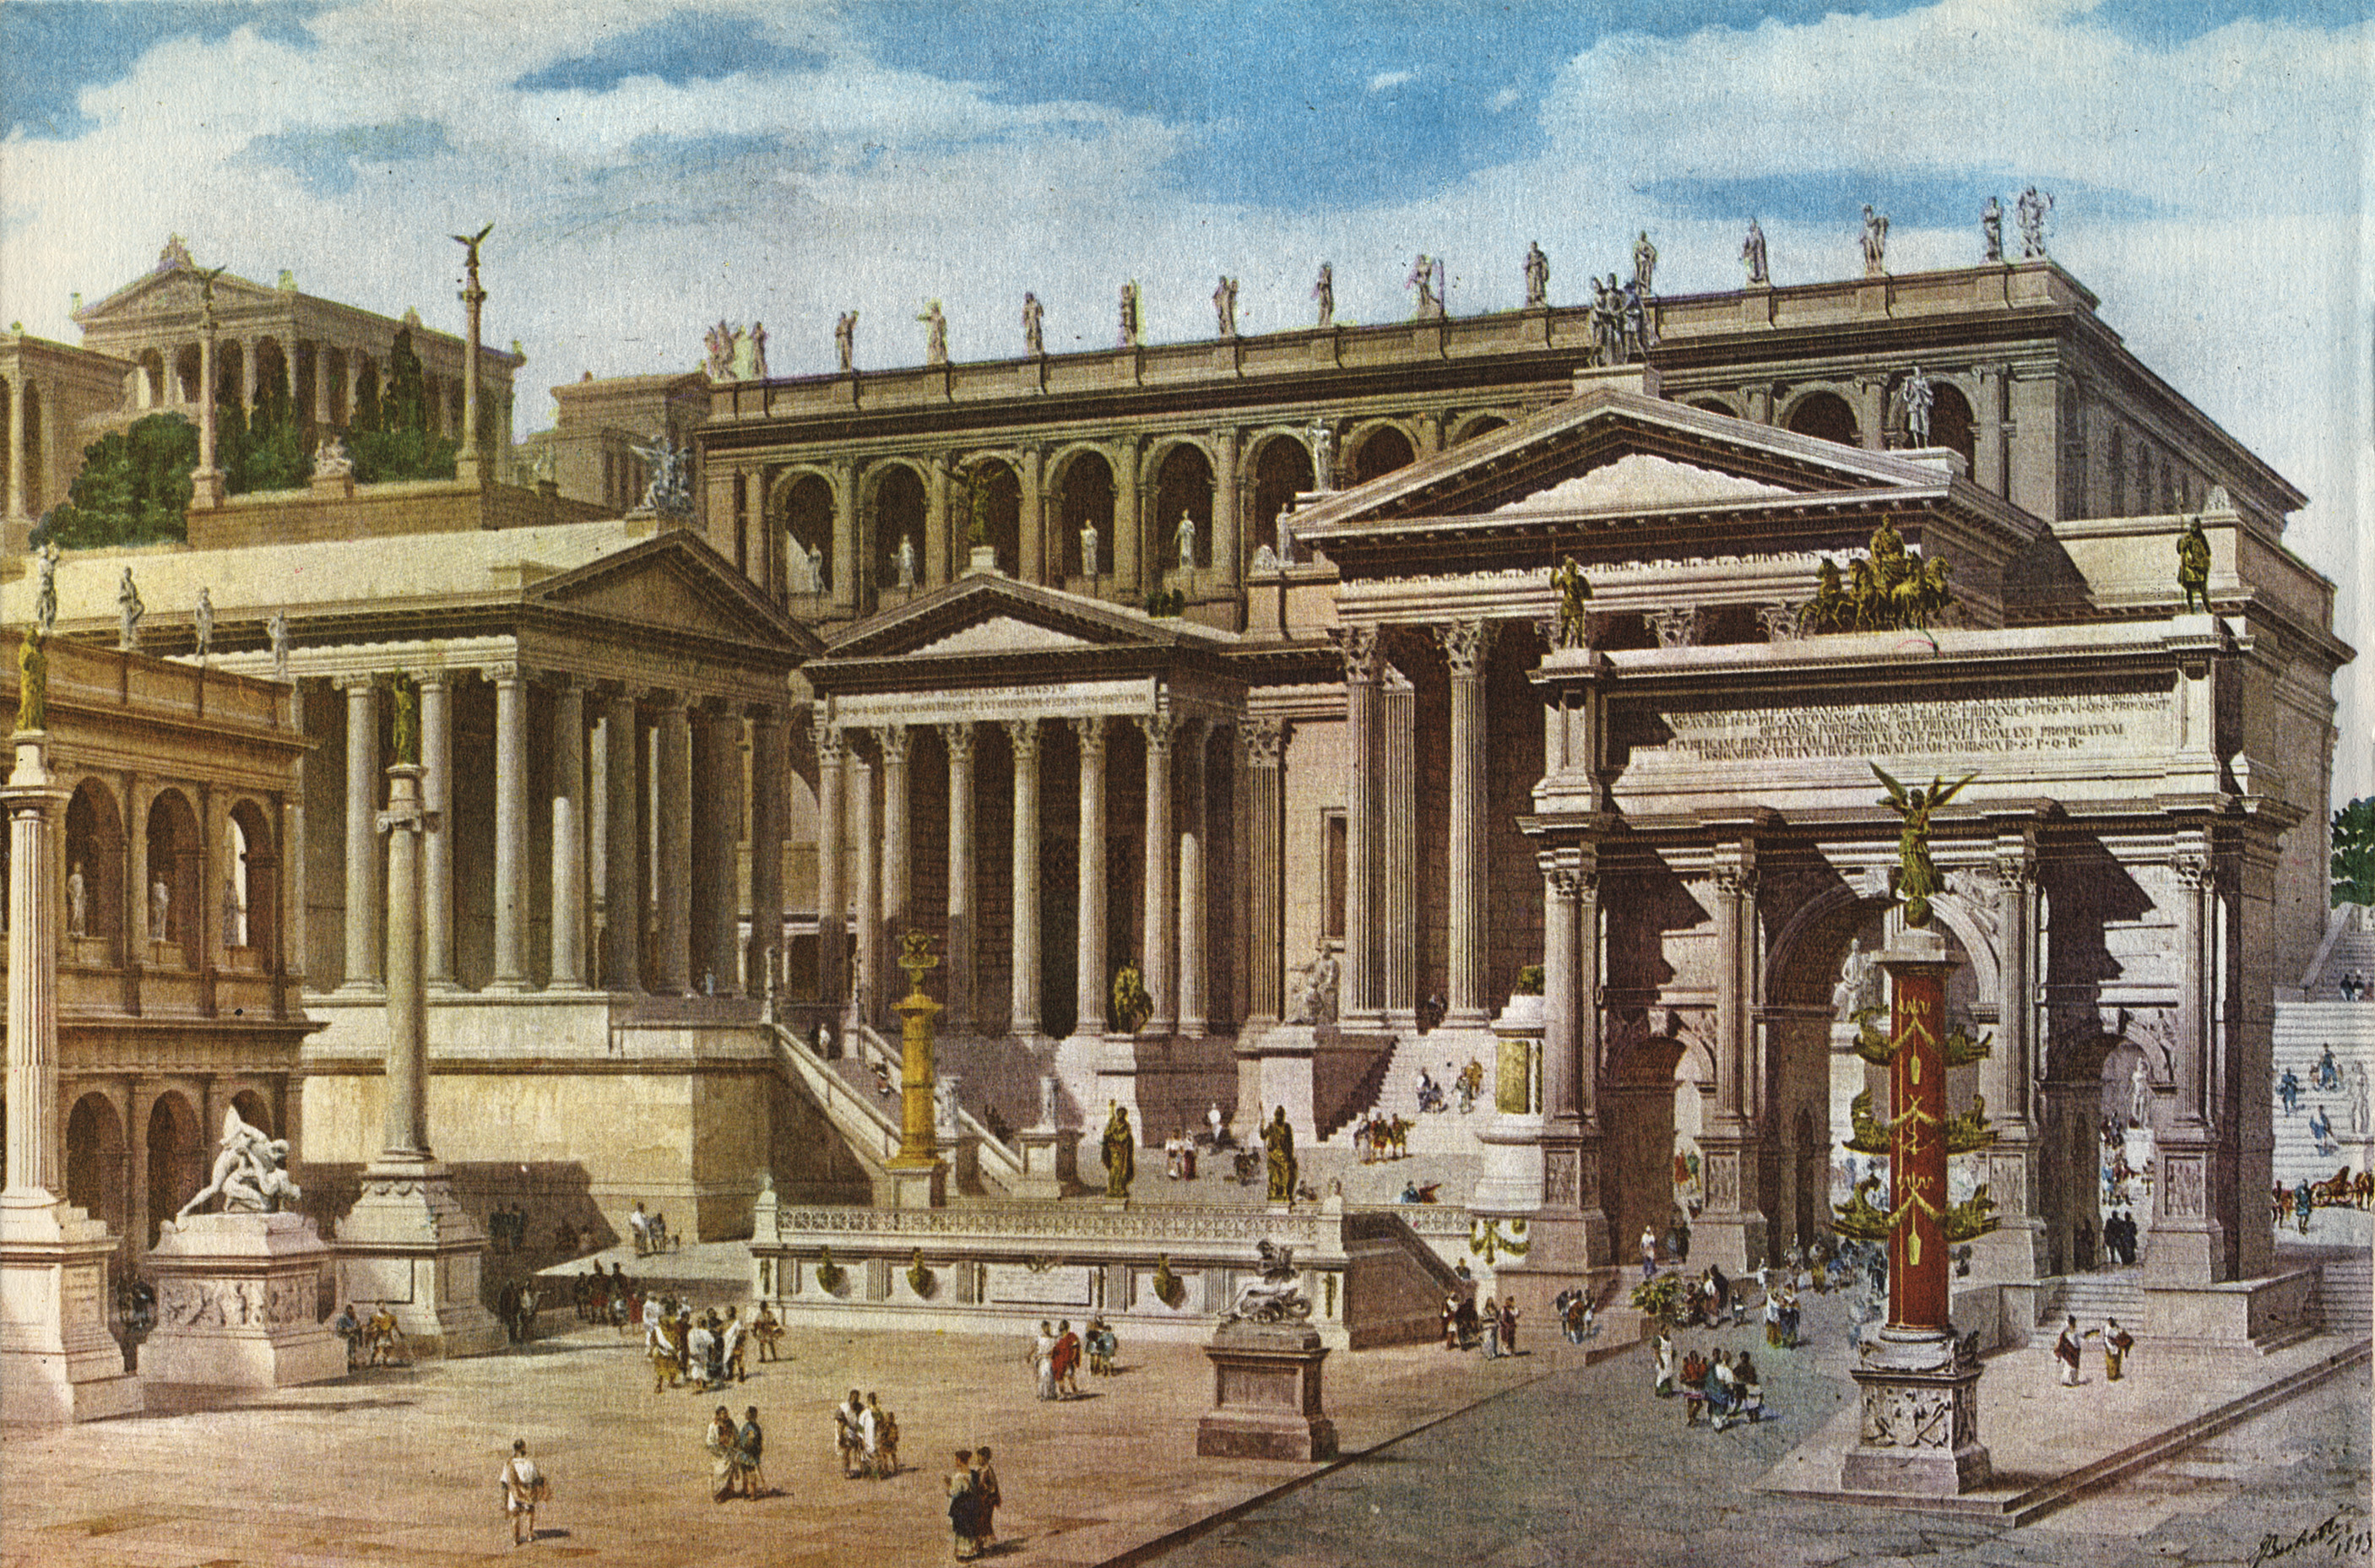 rome history Much of western culture has their beliefs shaped around roman thought our philosophy was born in rome most art theory was born in rome even much of modern science was born there (though they did supposedly destroy a lot when they razed the libr.